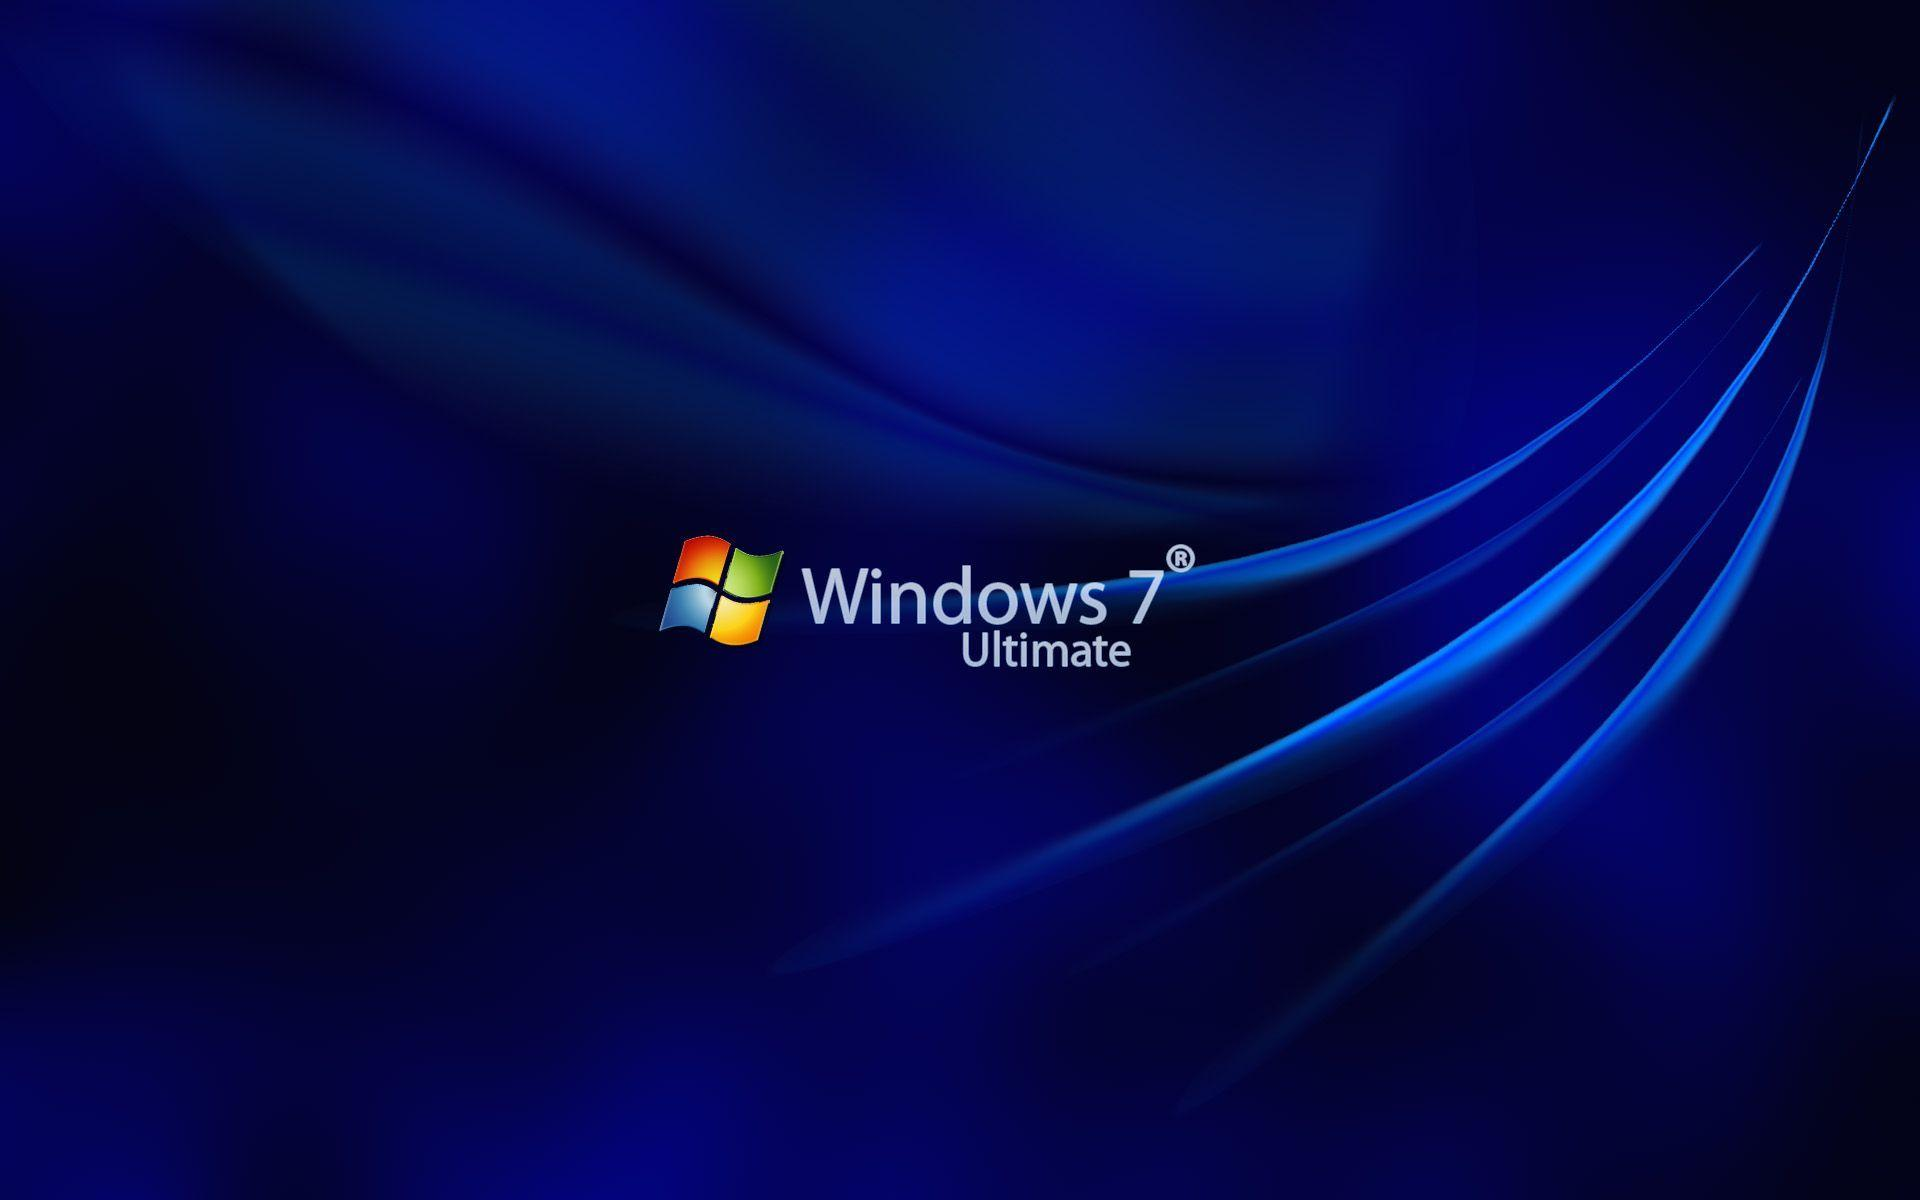 windows 7 ultimate desktop backgrounds - wallpaper cave